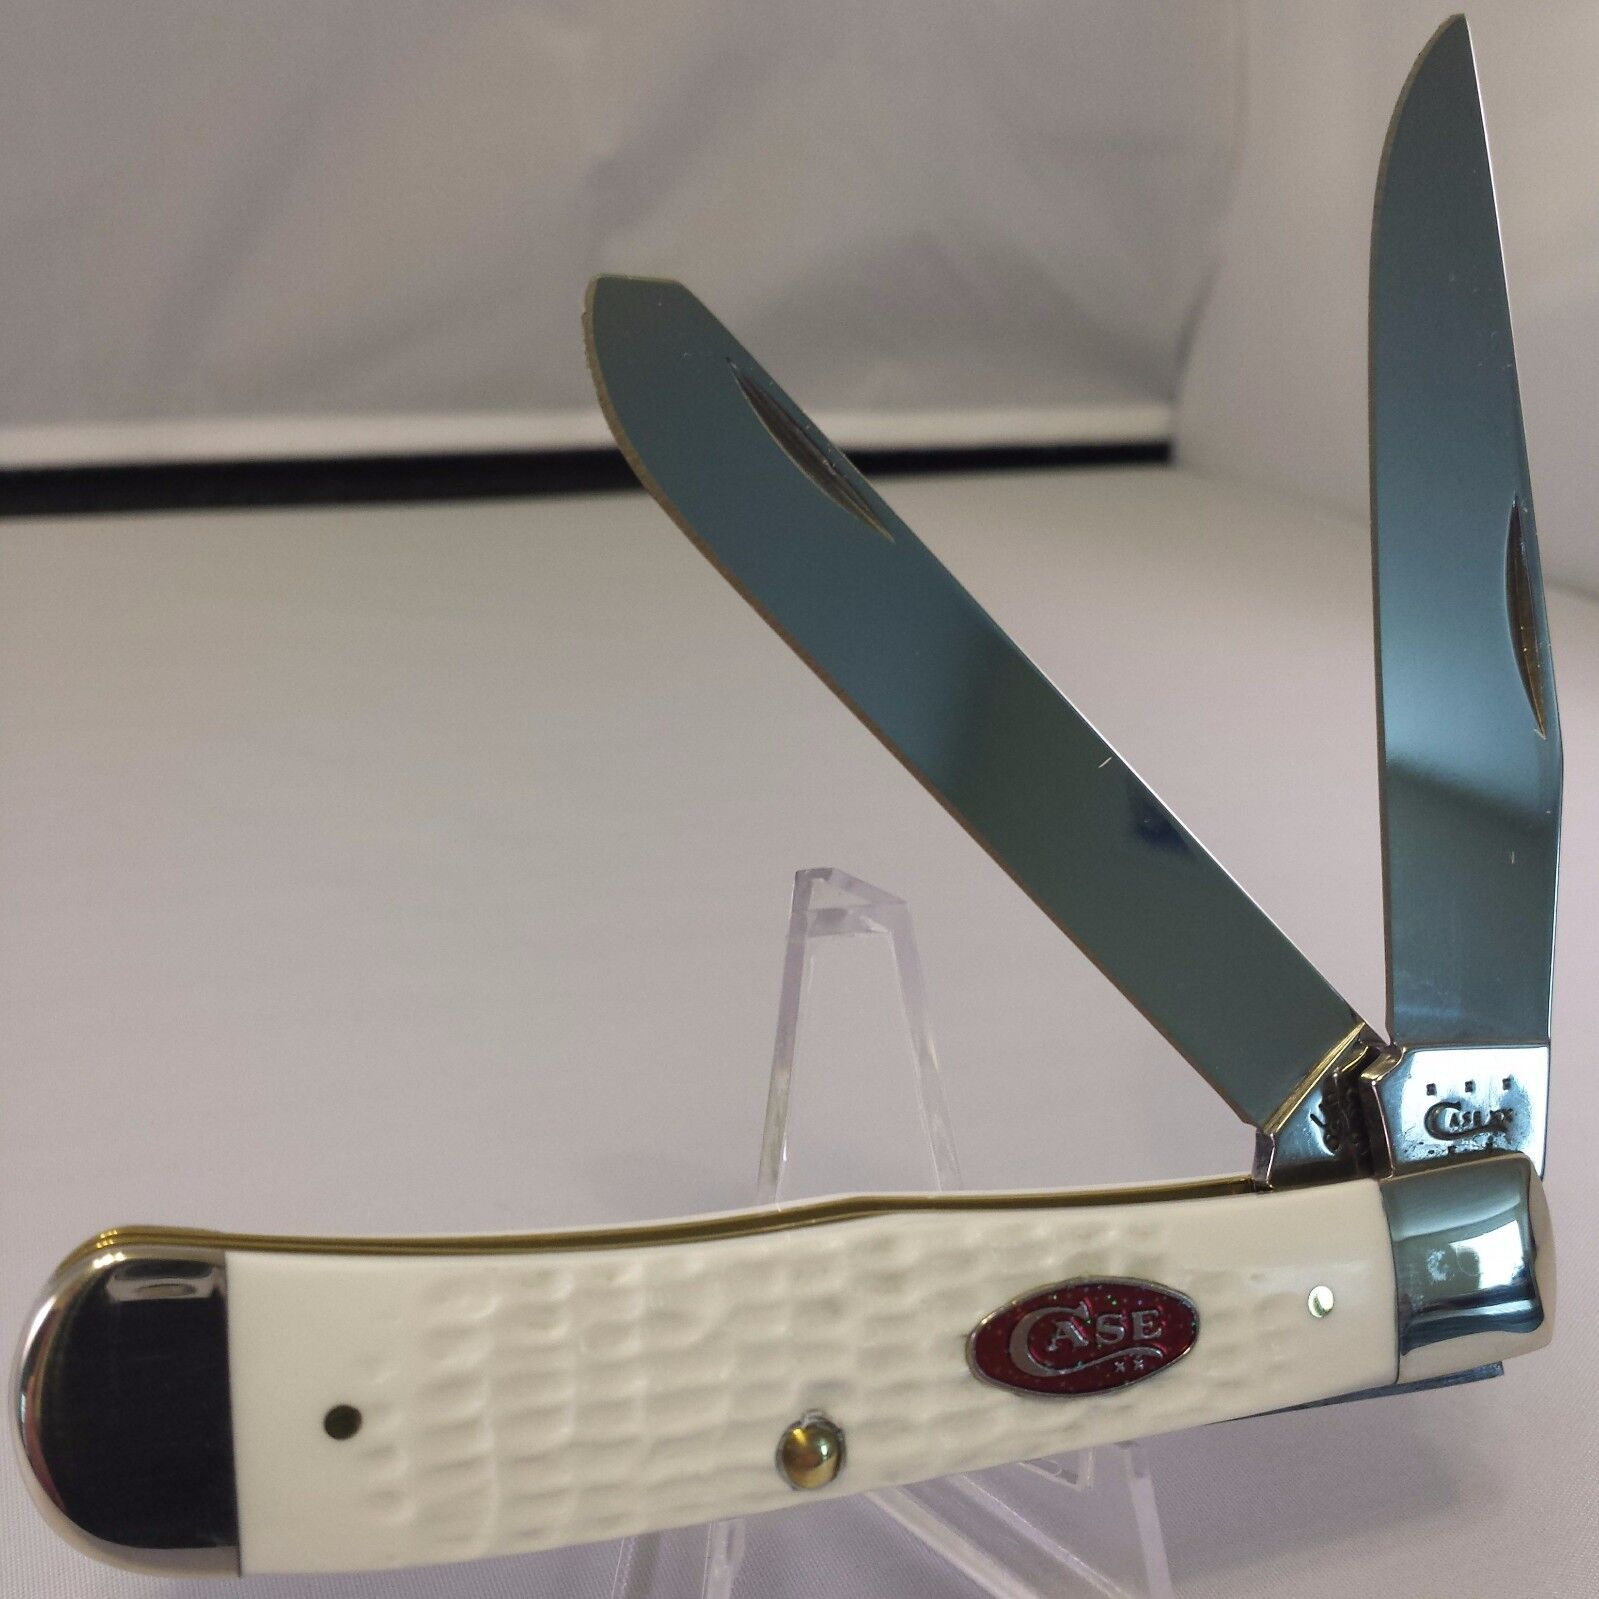 Case Xx 60182 Trapper Knife Sparxx 6254ss Knives White